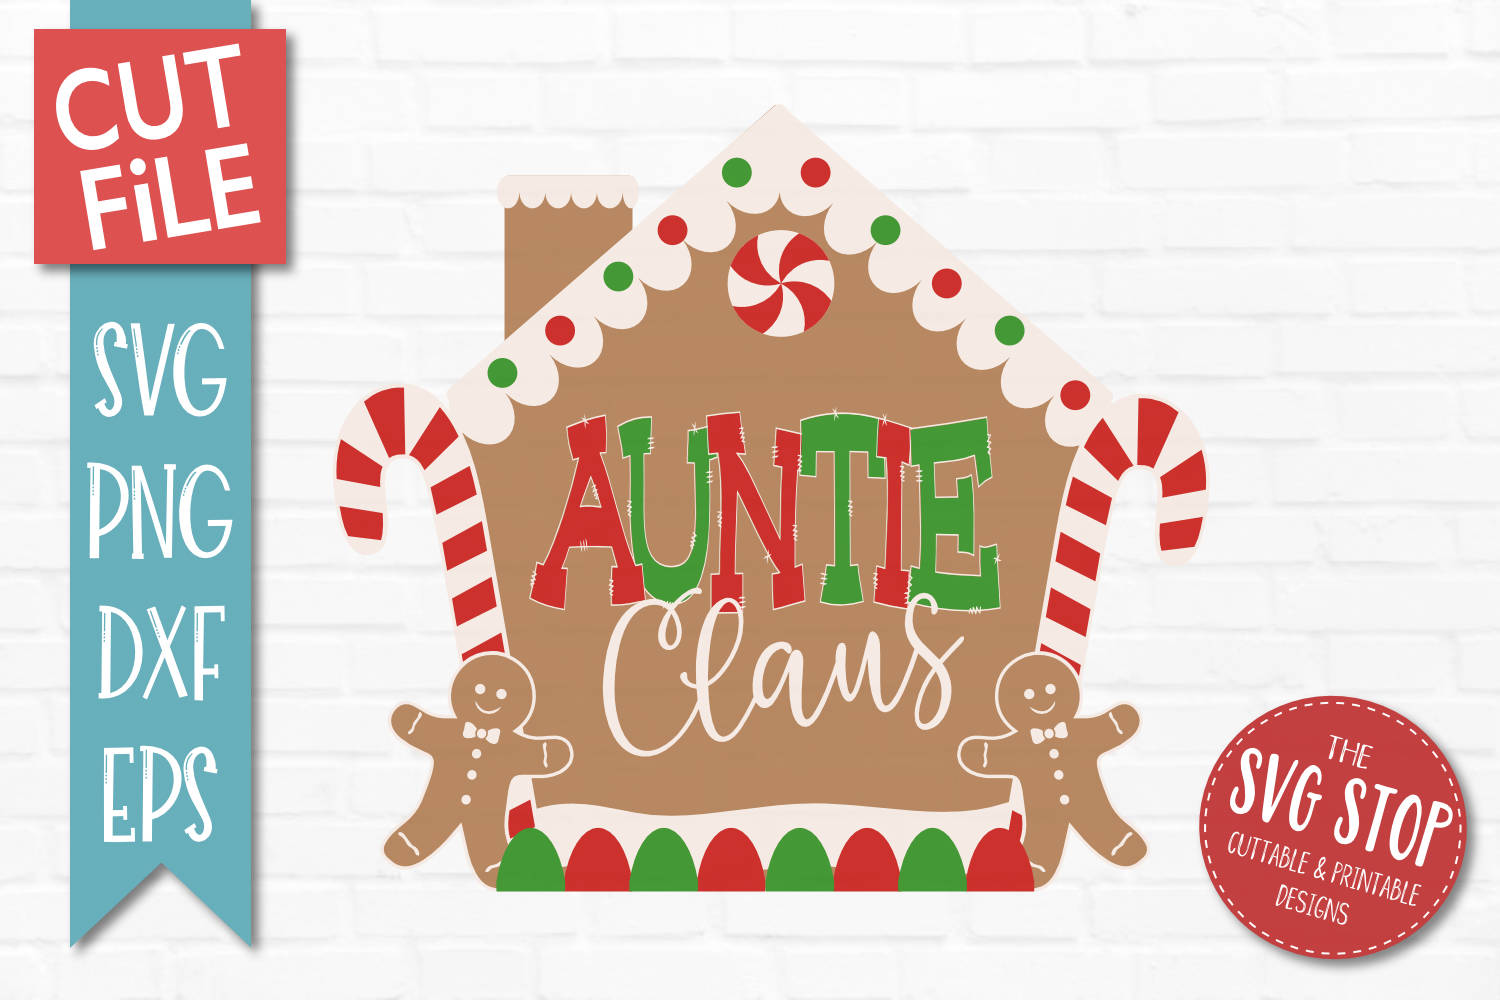 Auntie Claus Gingerbread Christmas SVG, PNG, DXF, EPS example image 1